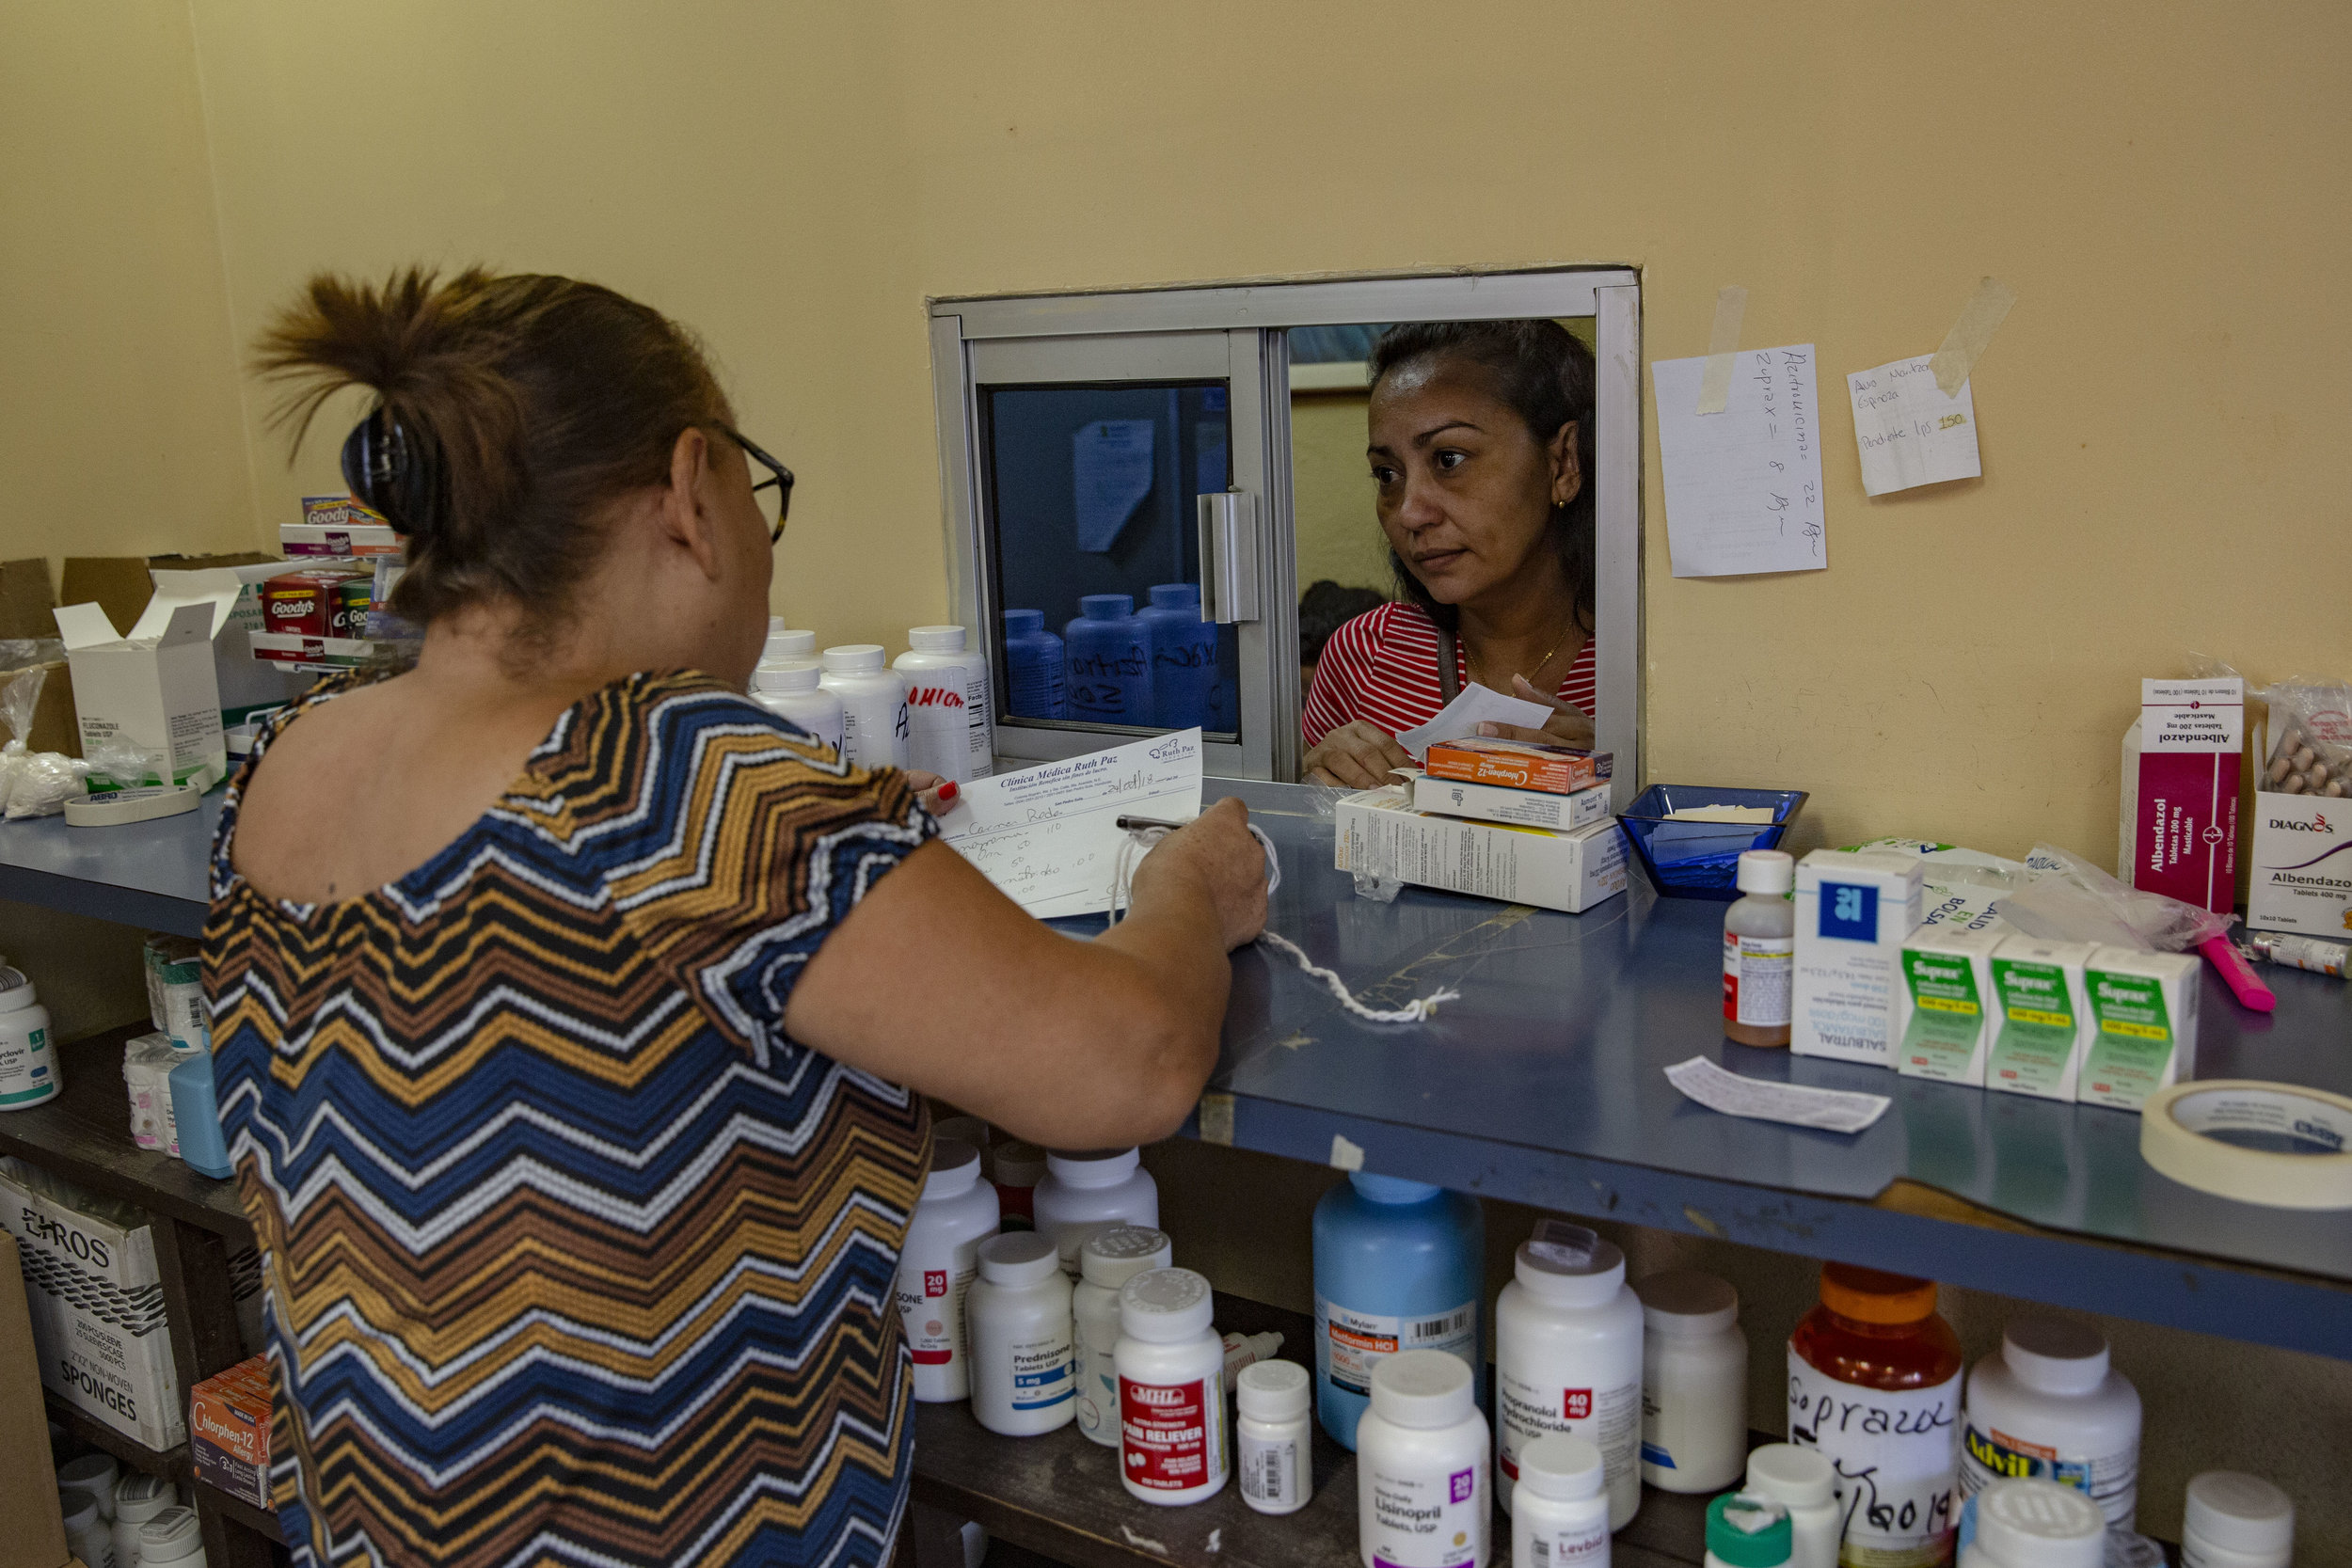 Patients get their free medications at the Ruth Paz clinic in Bogràn, a pretty dangerous neighborohood in San Pedro Sula, Honduras.